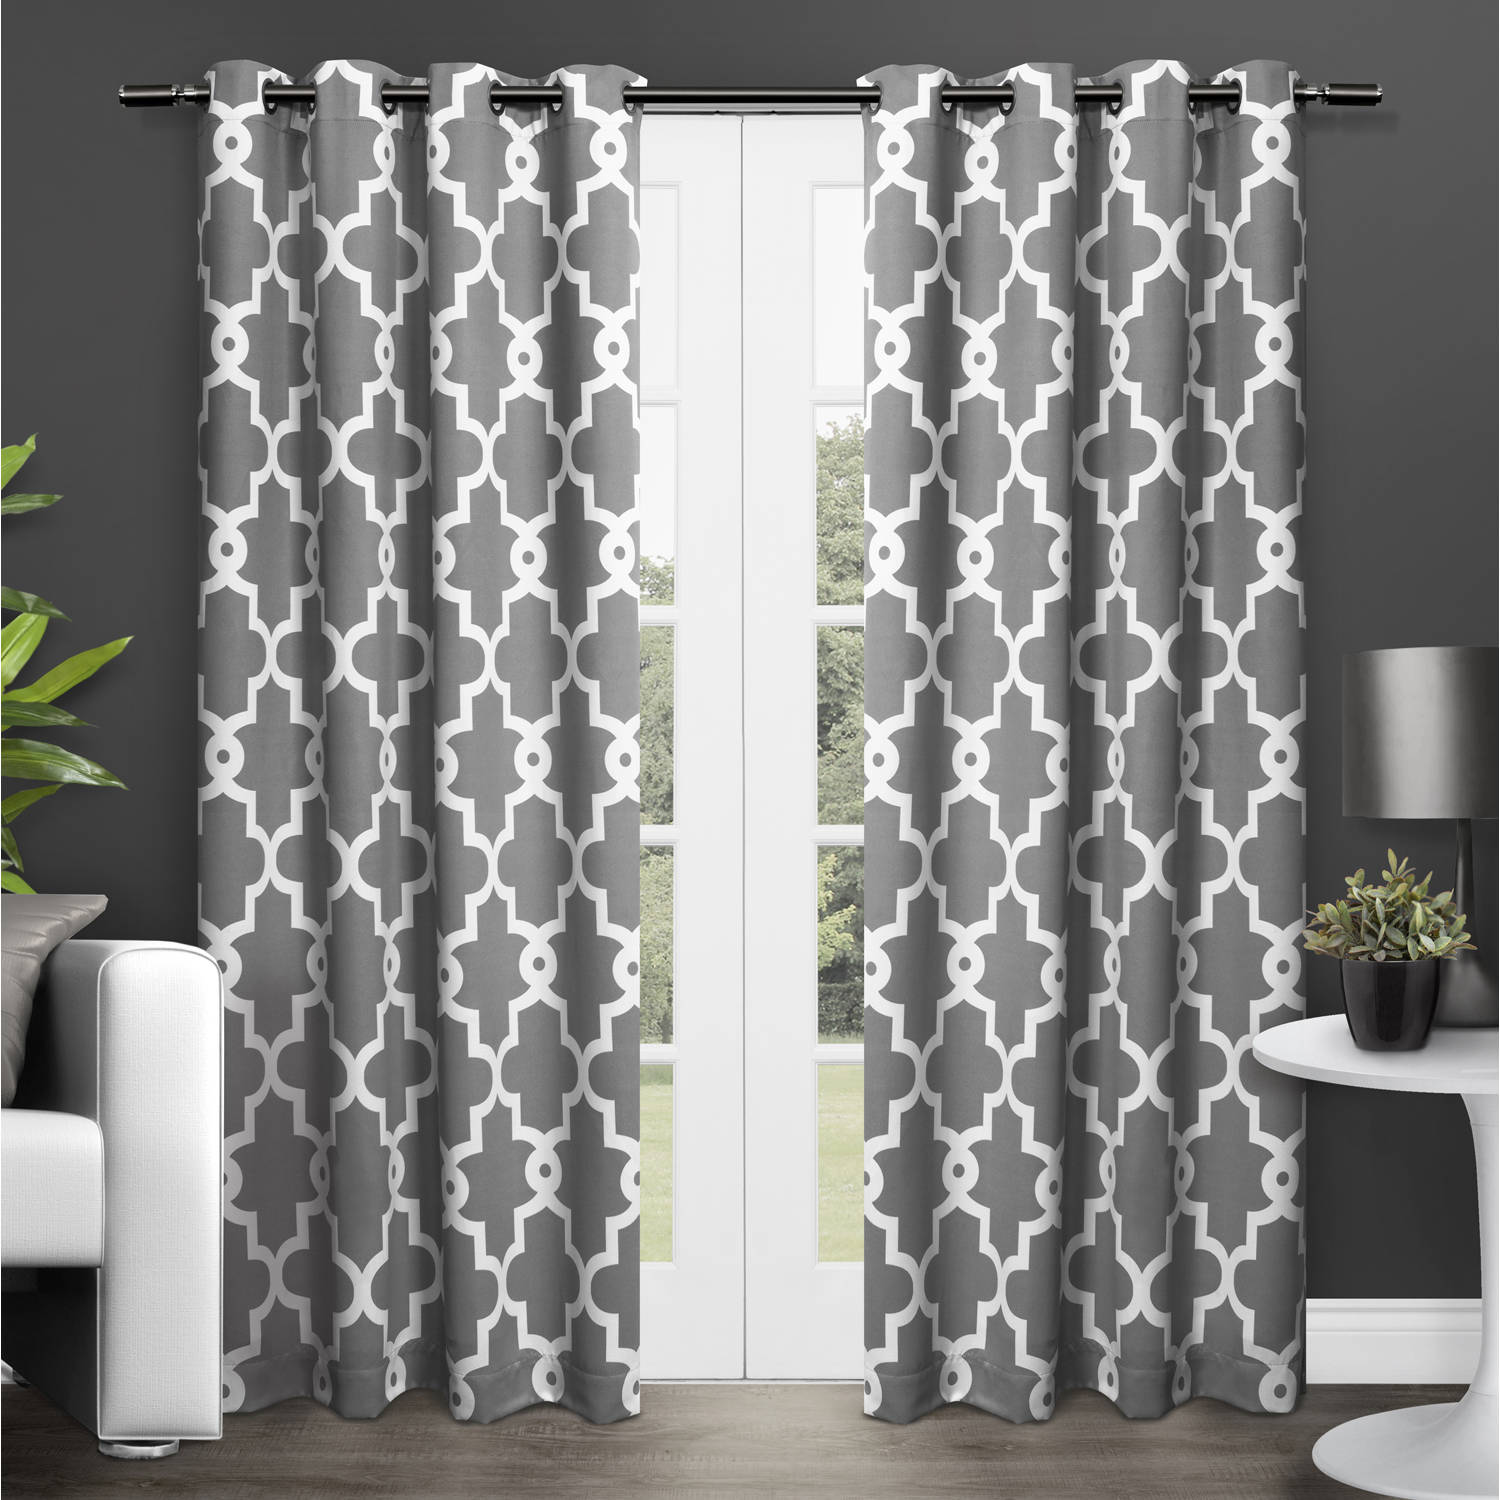 Exclusive Home Curtains 2 Pack Ironwork Sateen Woven Blackout Grommet Top Curtain Panels